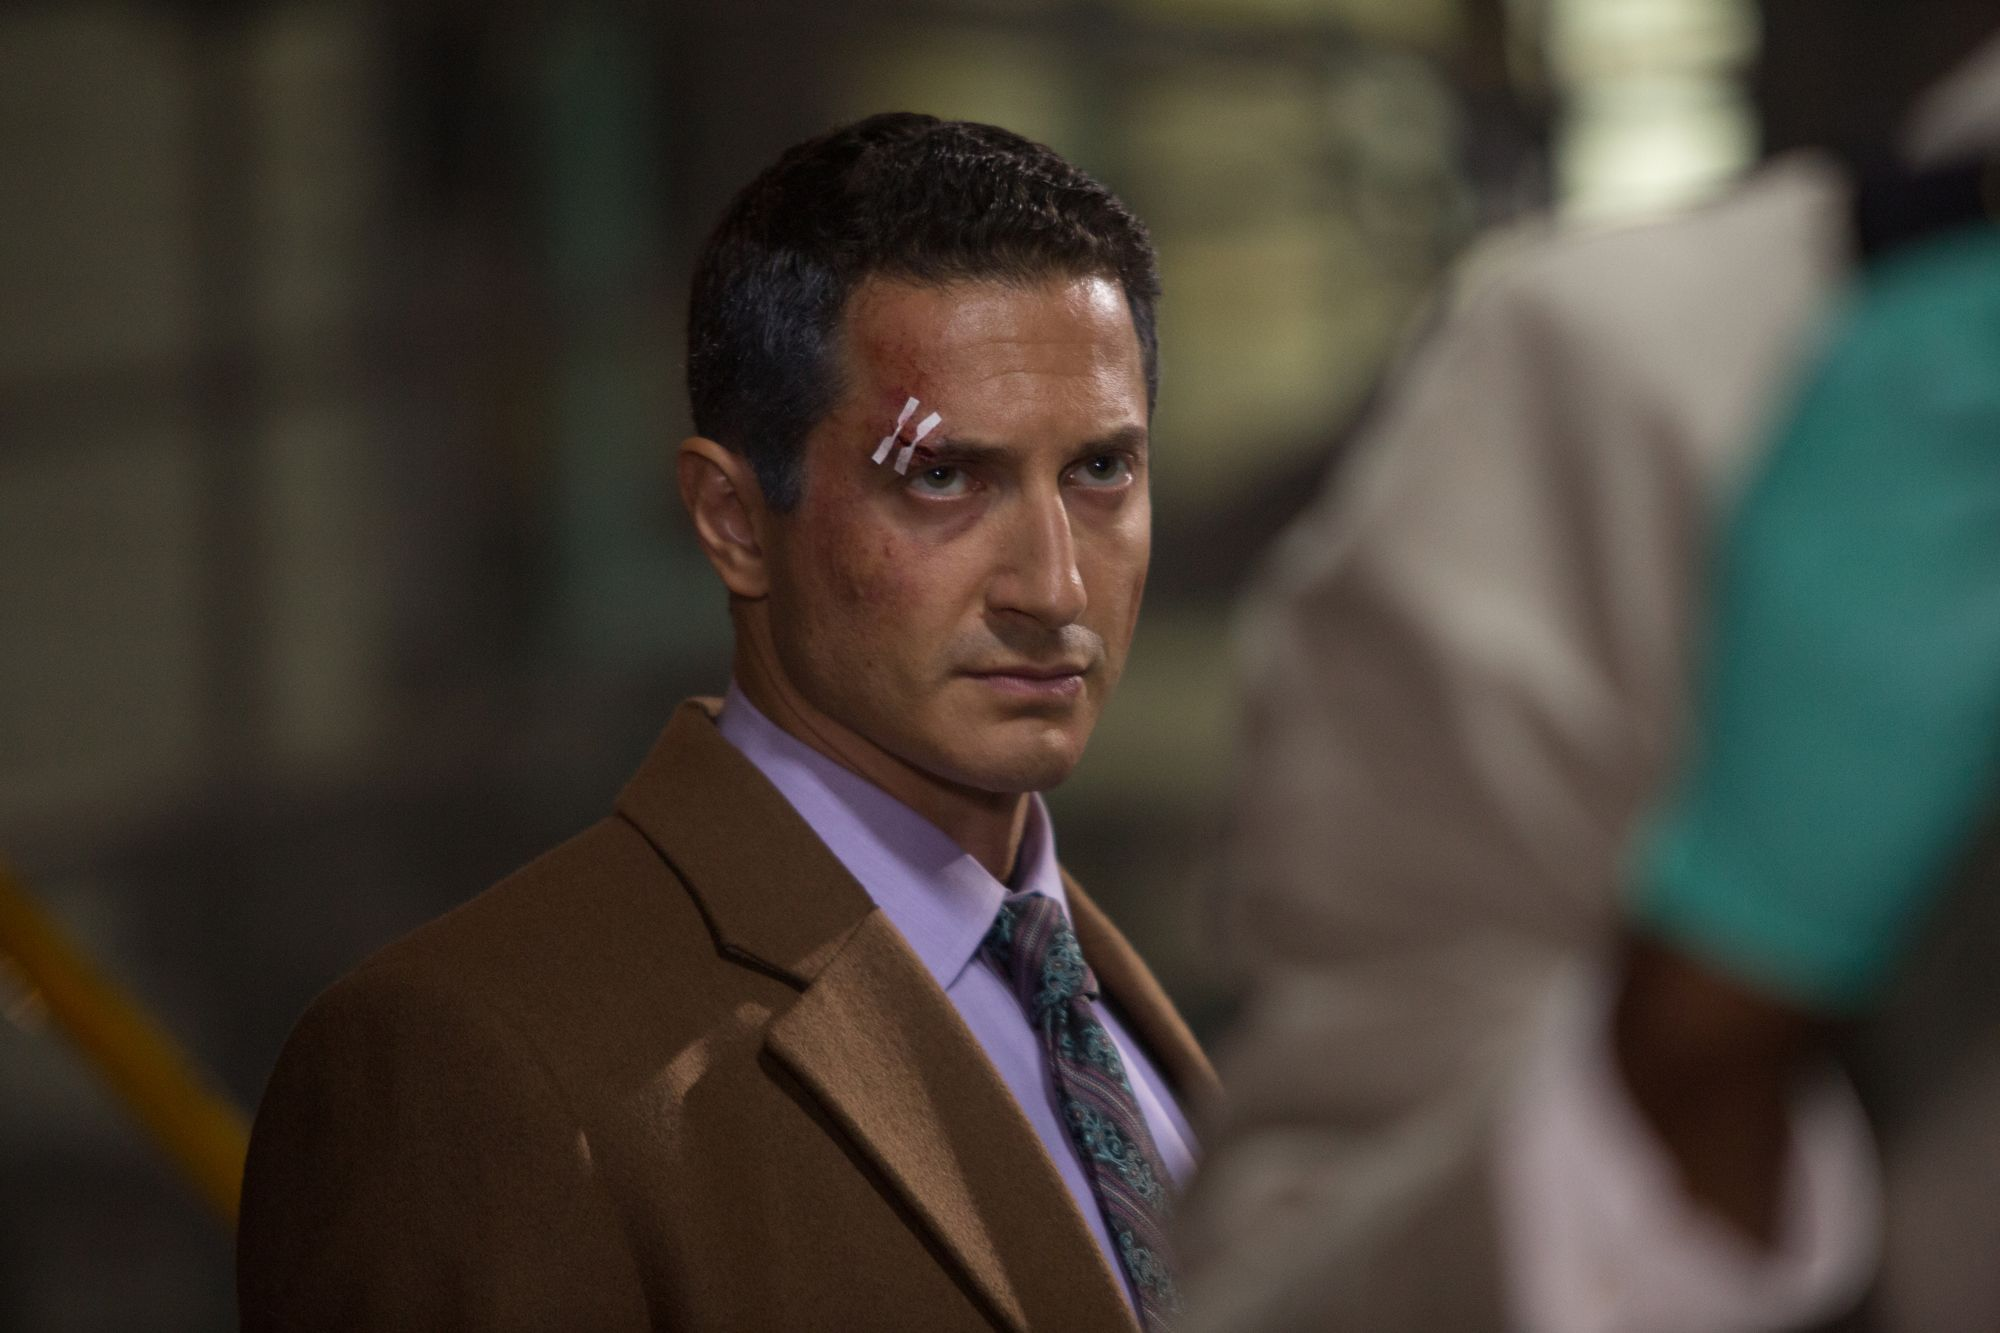 Friday Ratings Grimm Falls To Series Low